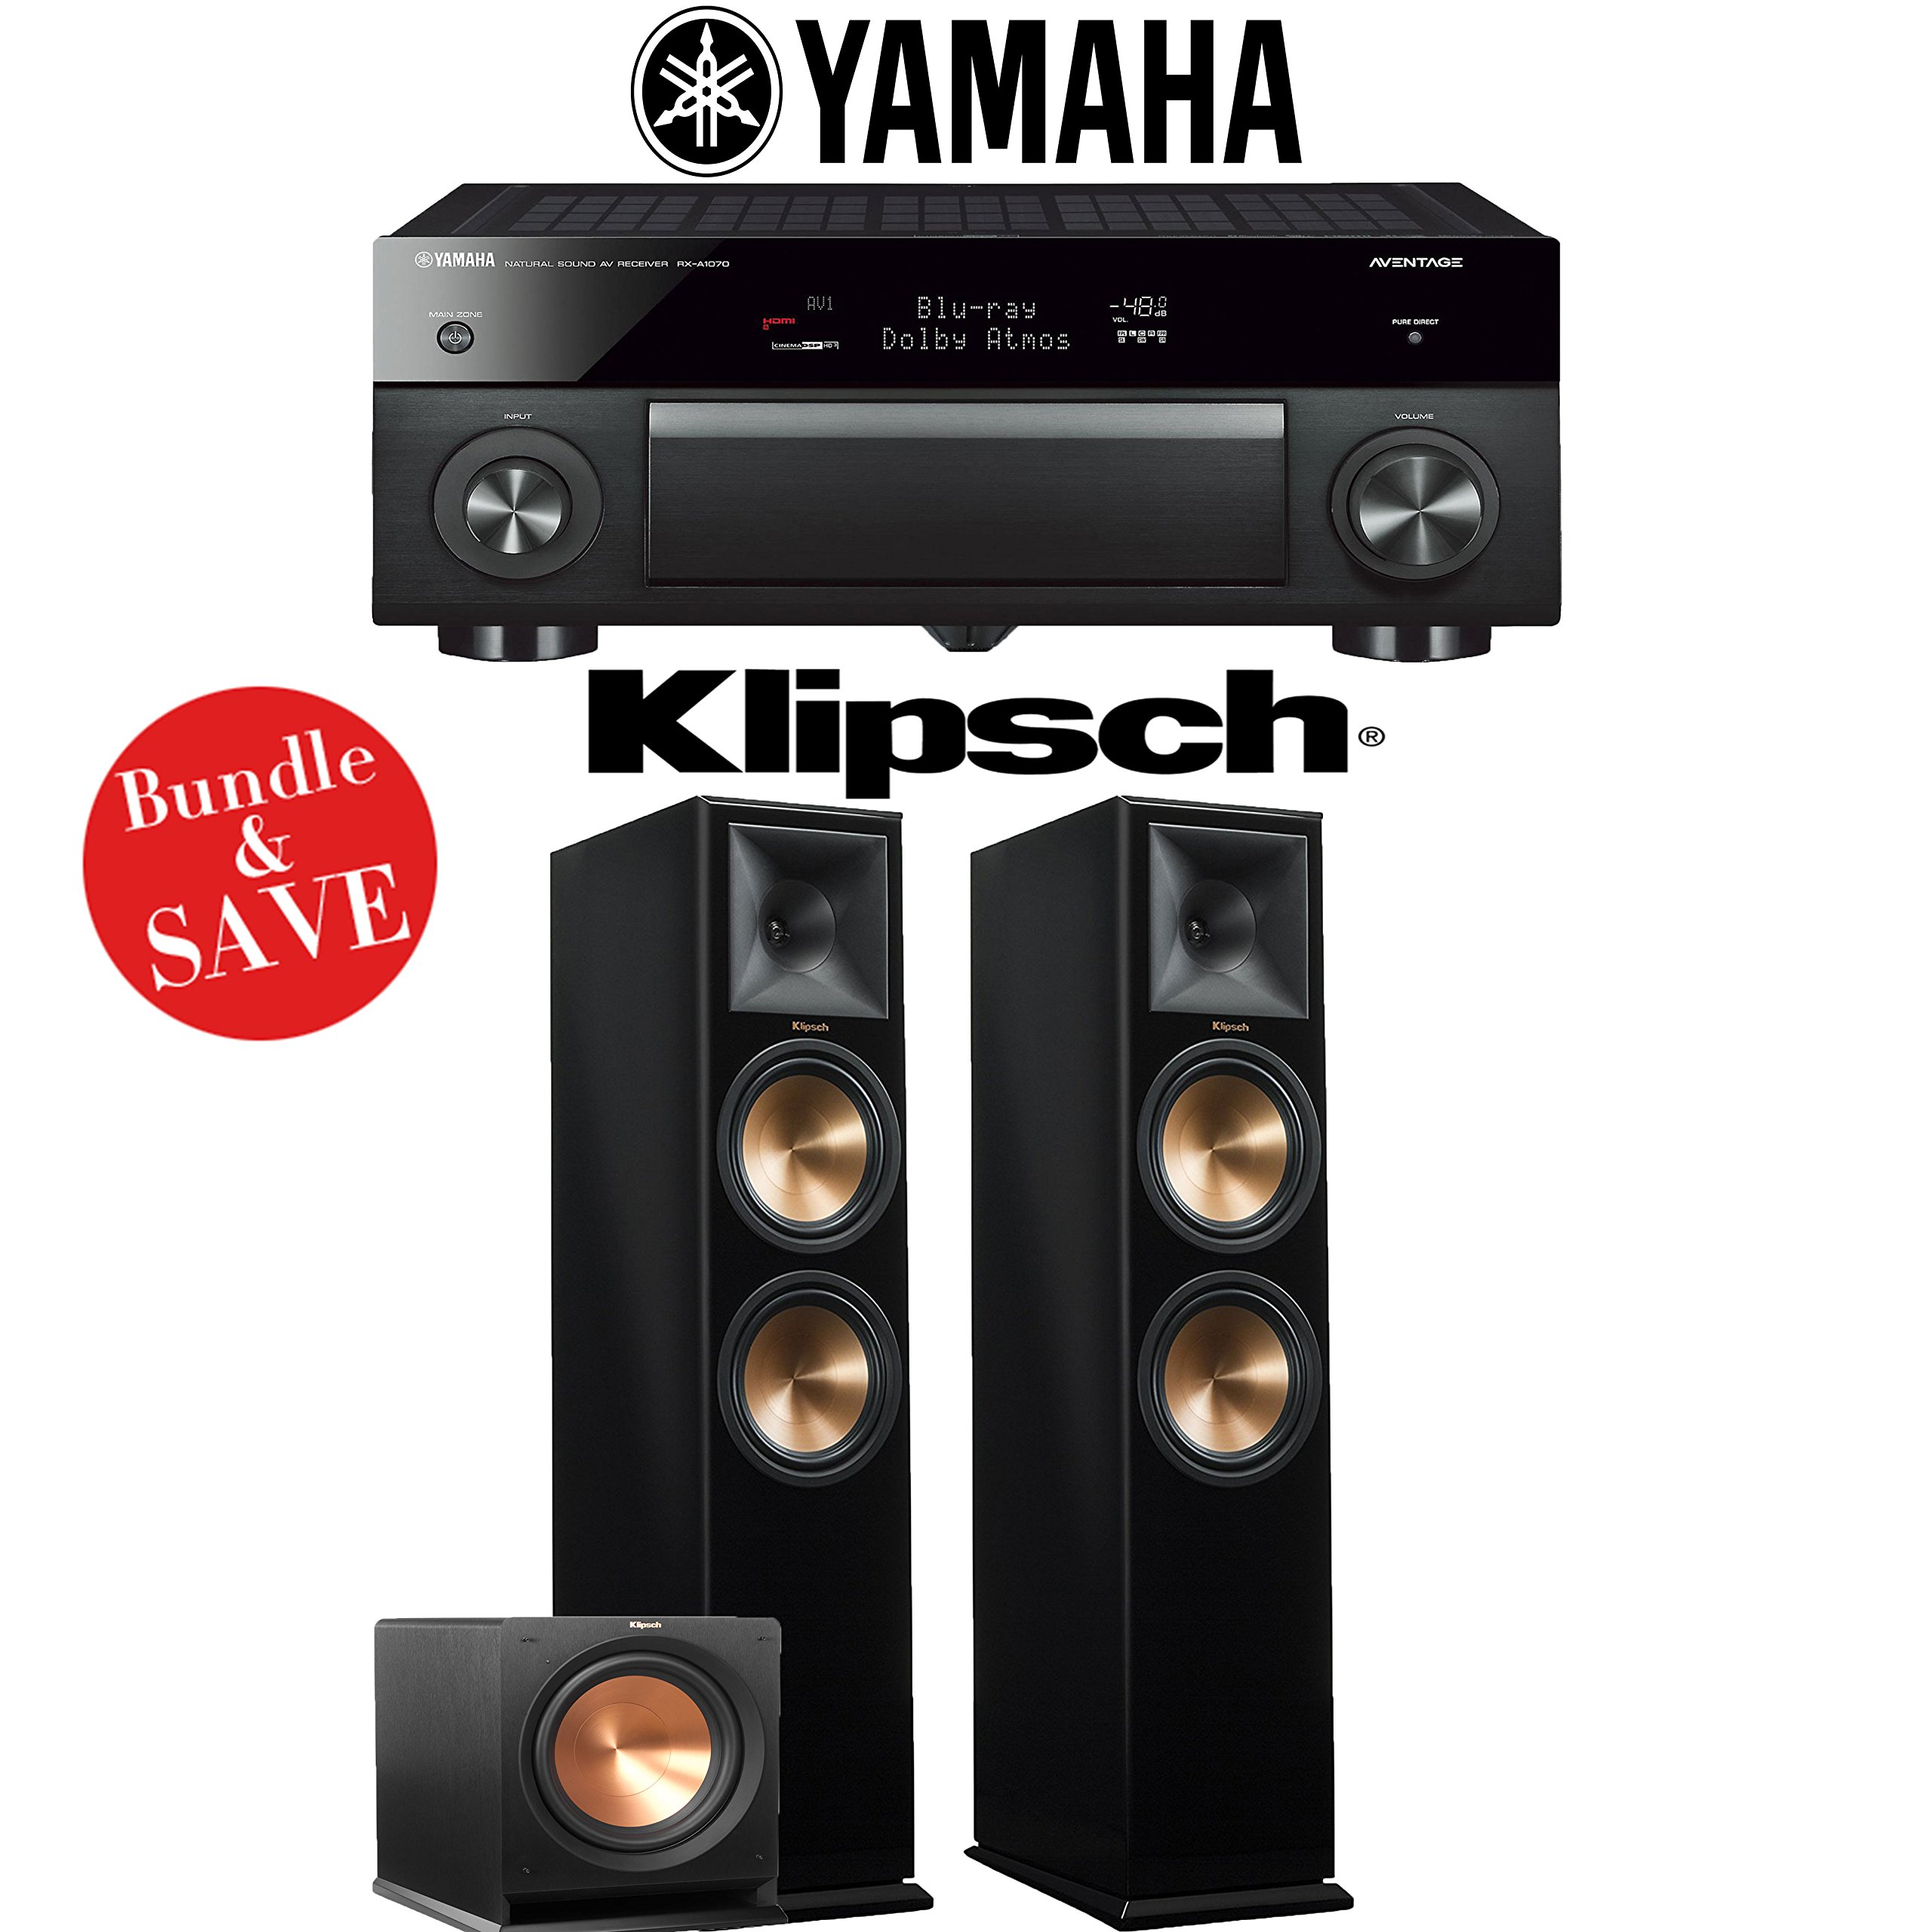 Yamaha AVENTAGE RX-A1070BL 7.2-Ch 4K Network AV Receiver + Klipsch RP-280F + Klipsch R-112SW - 2.1-Ch Home Theater Package (Piano Black) by Yamaha